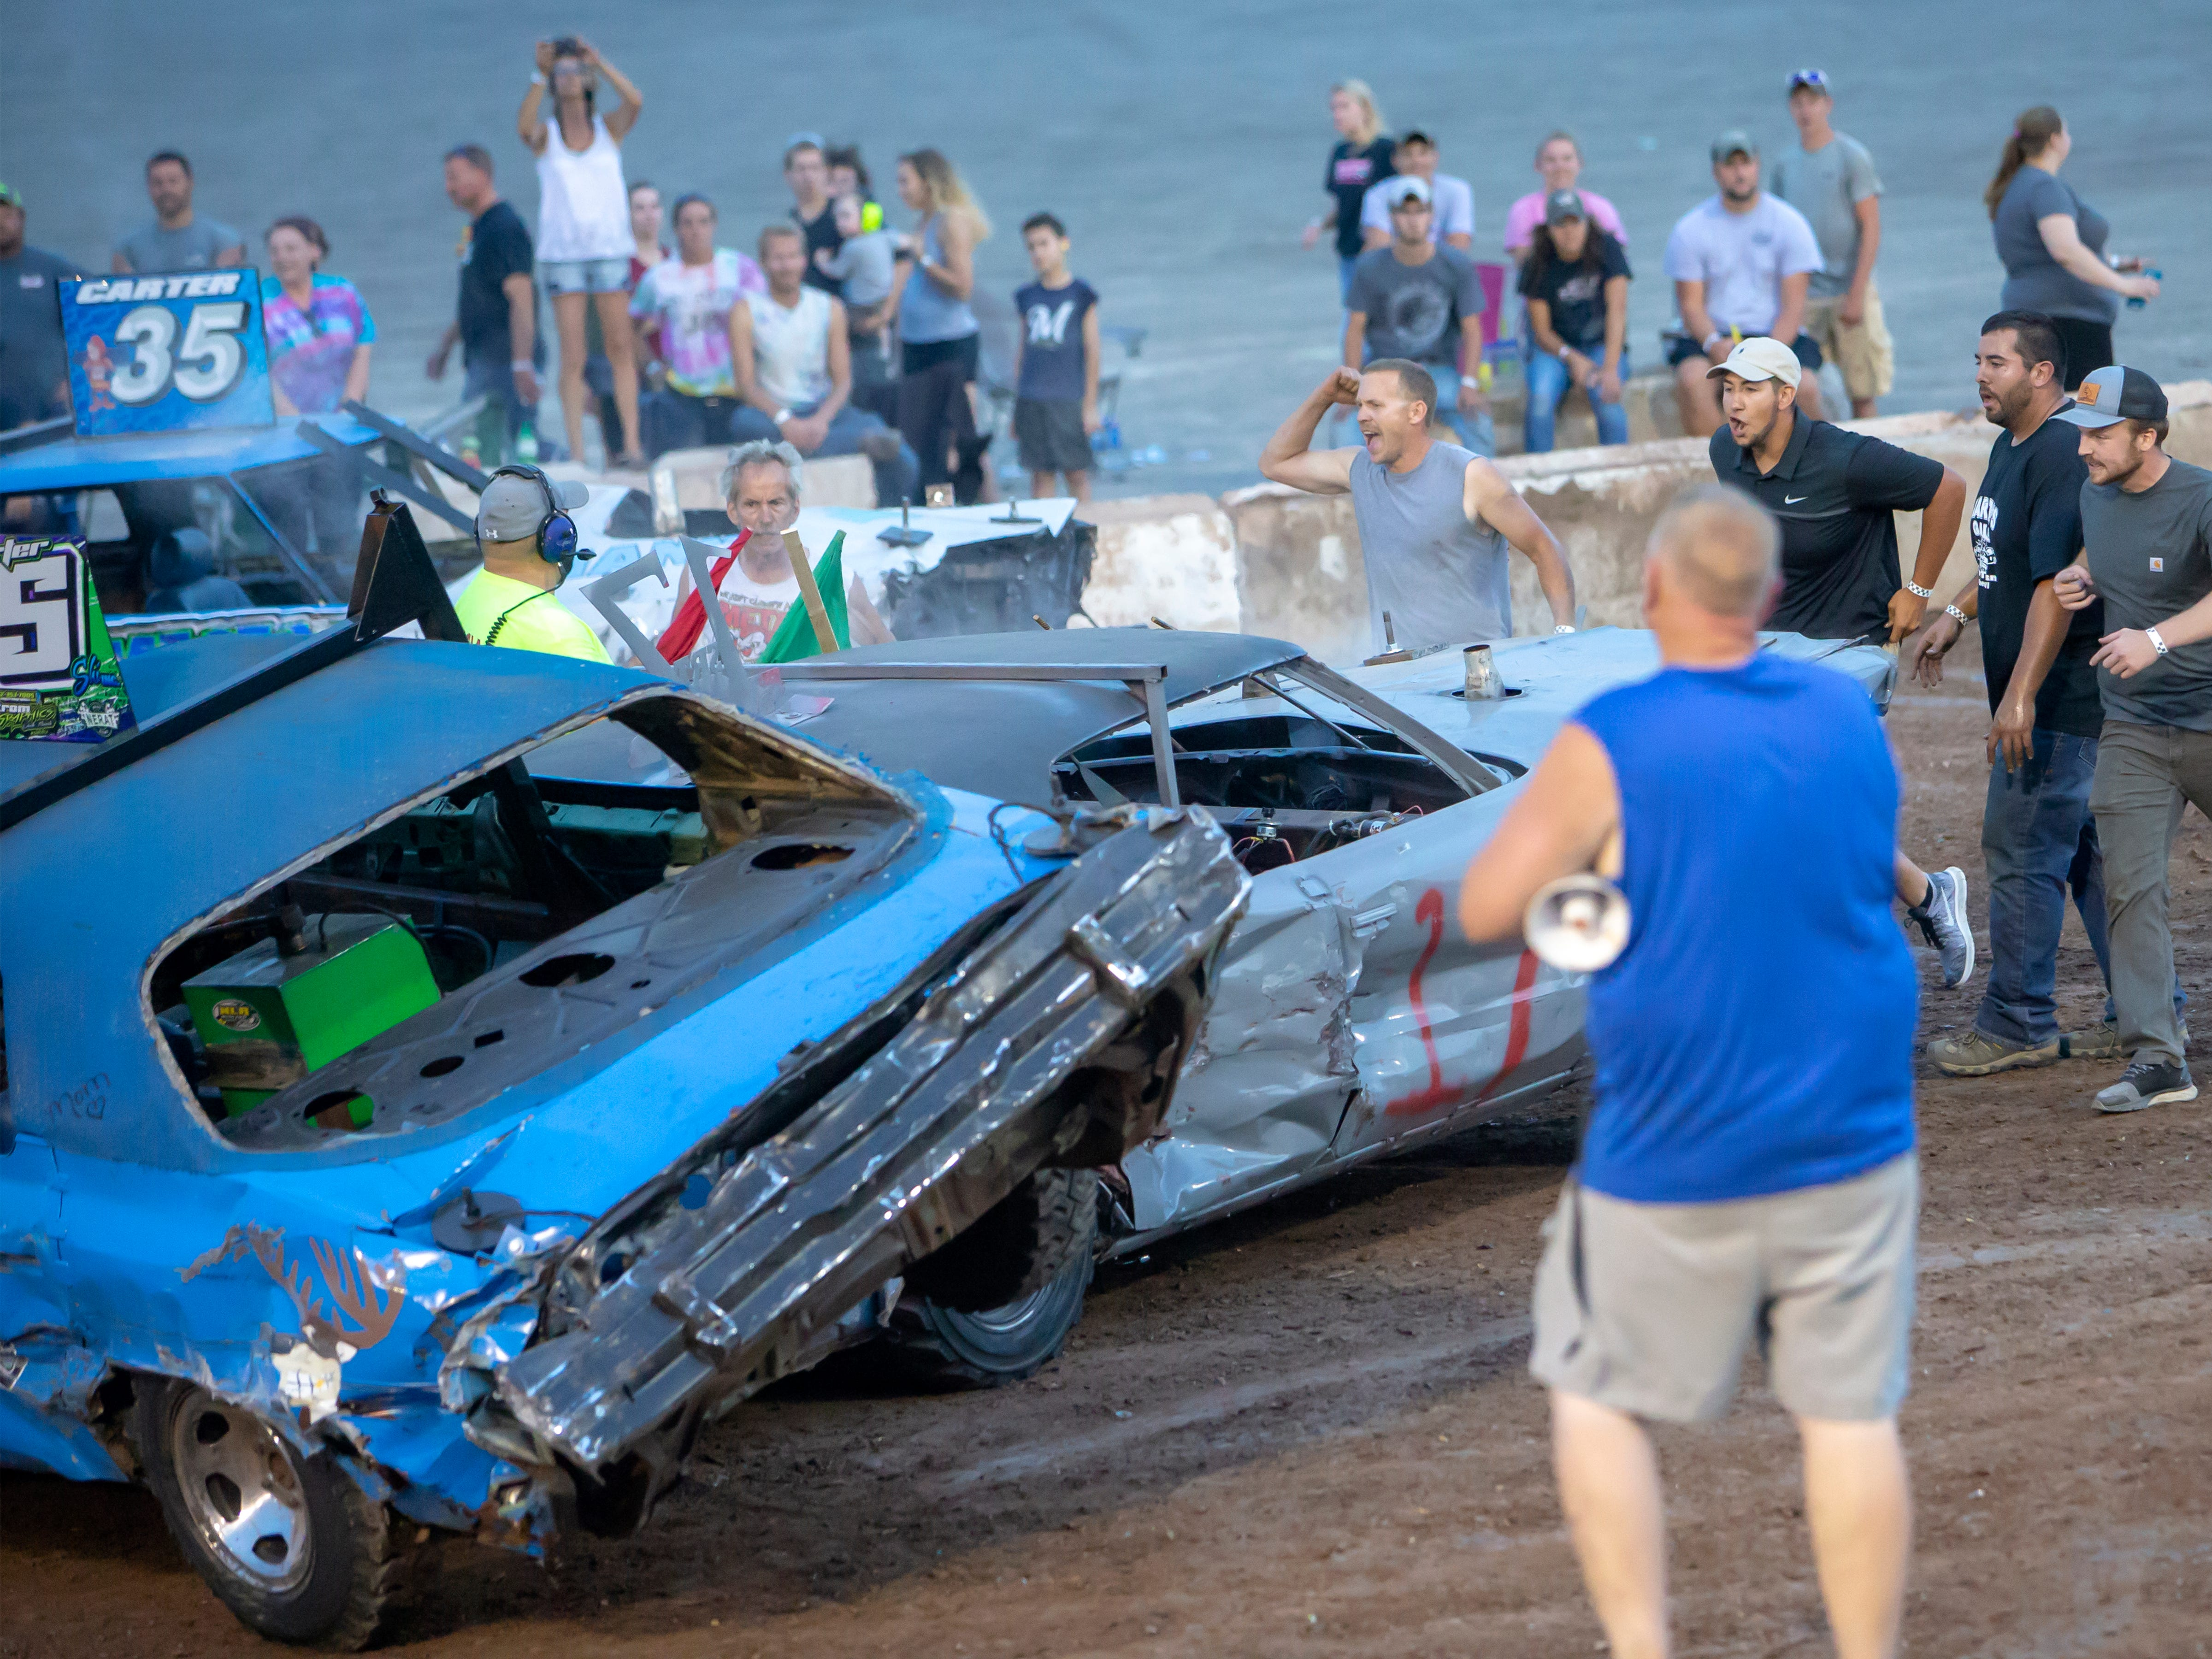 Drivers compete in the demolition derby during the Winnebago County Fair on Saturday, Aug. 4, 2018.